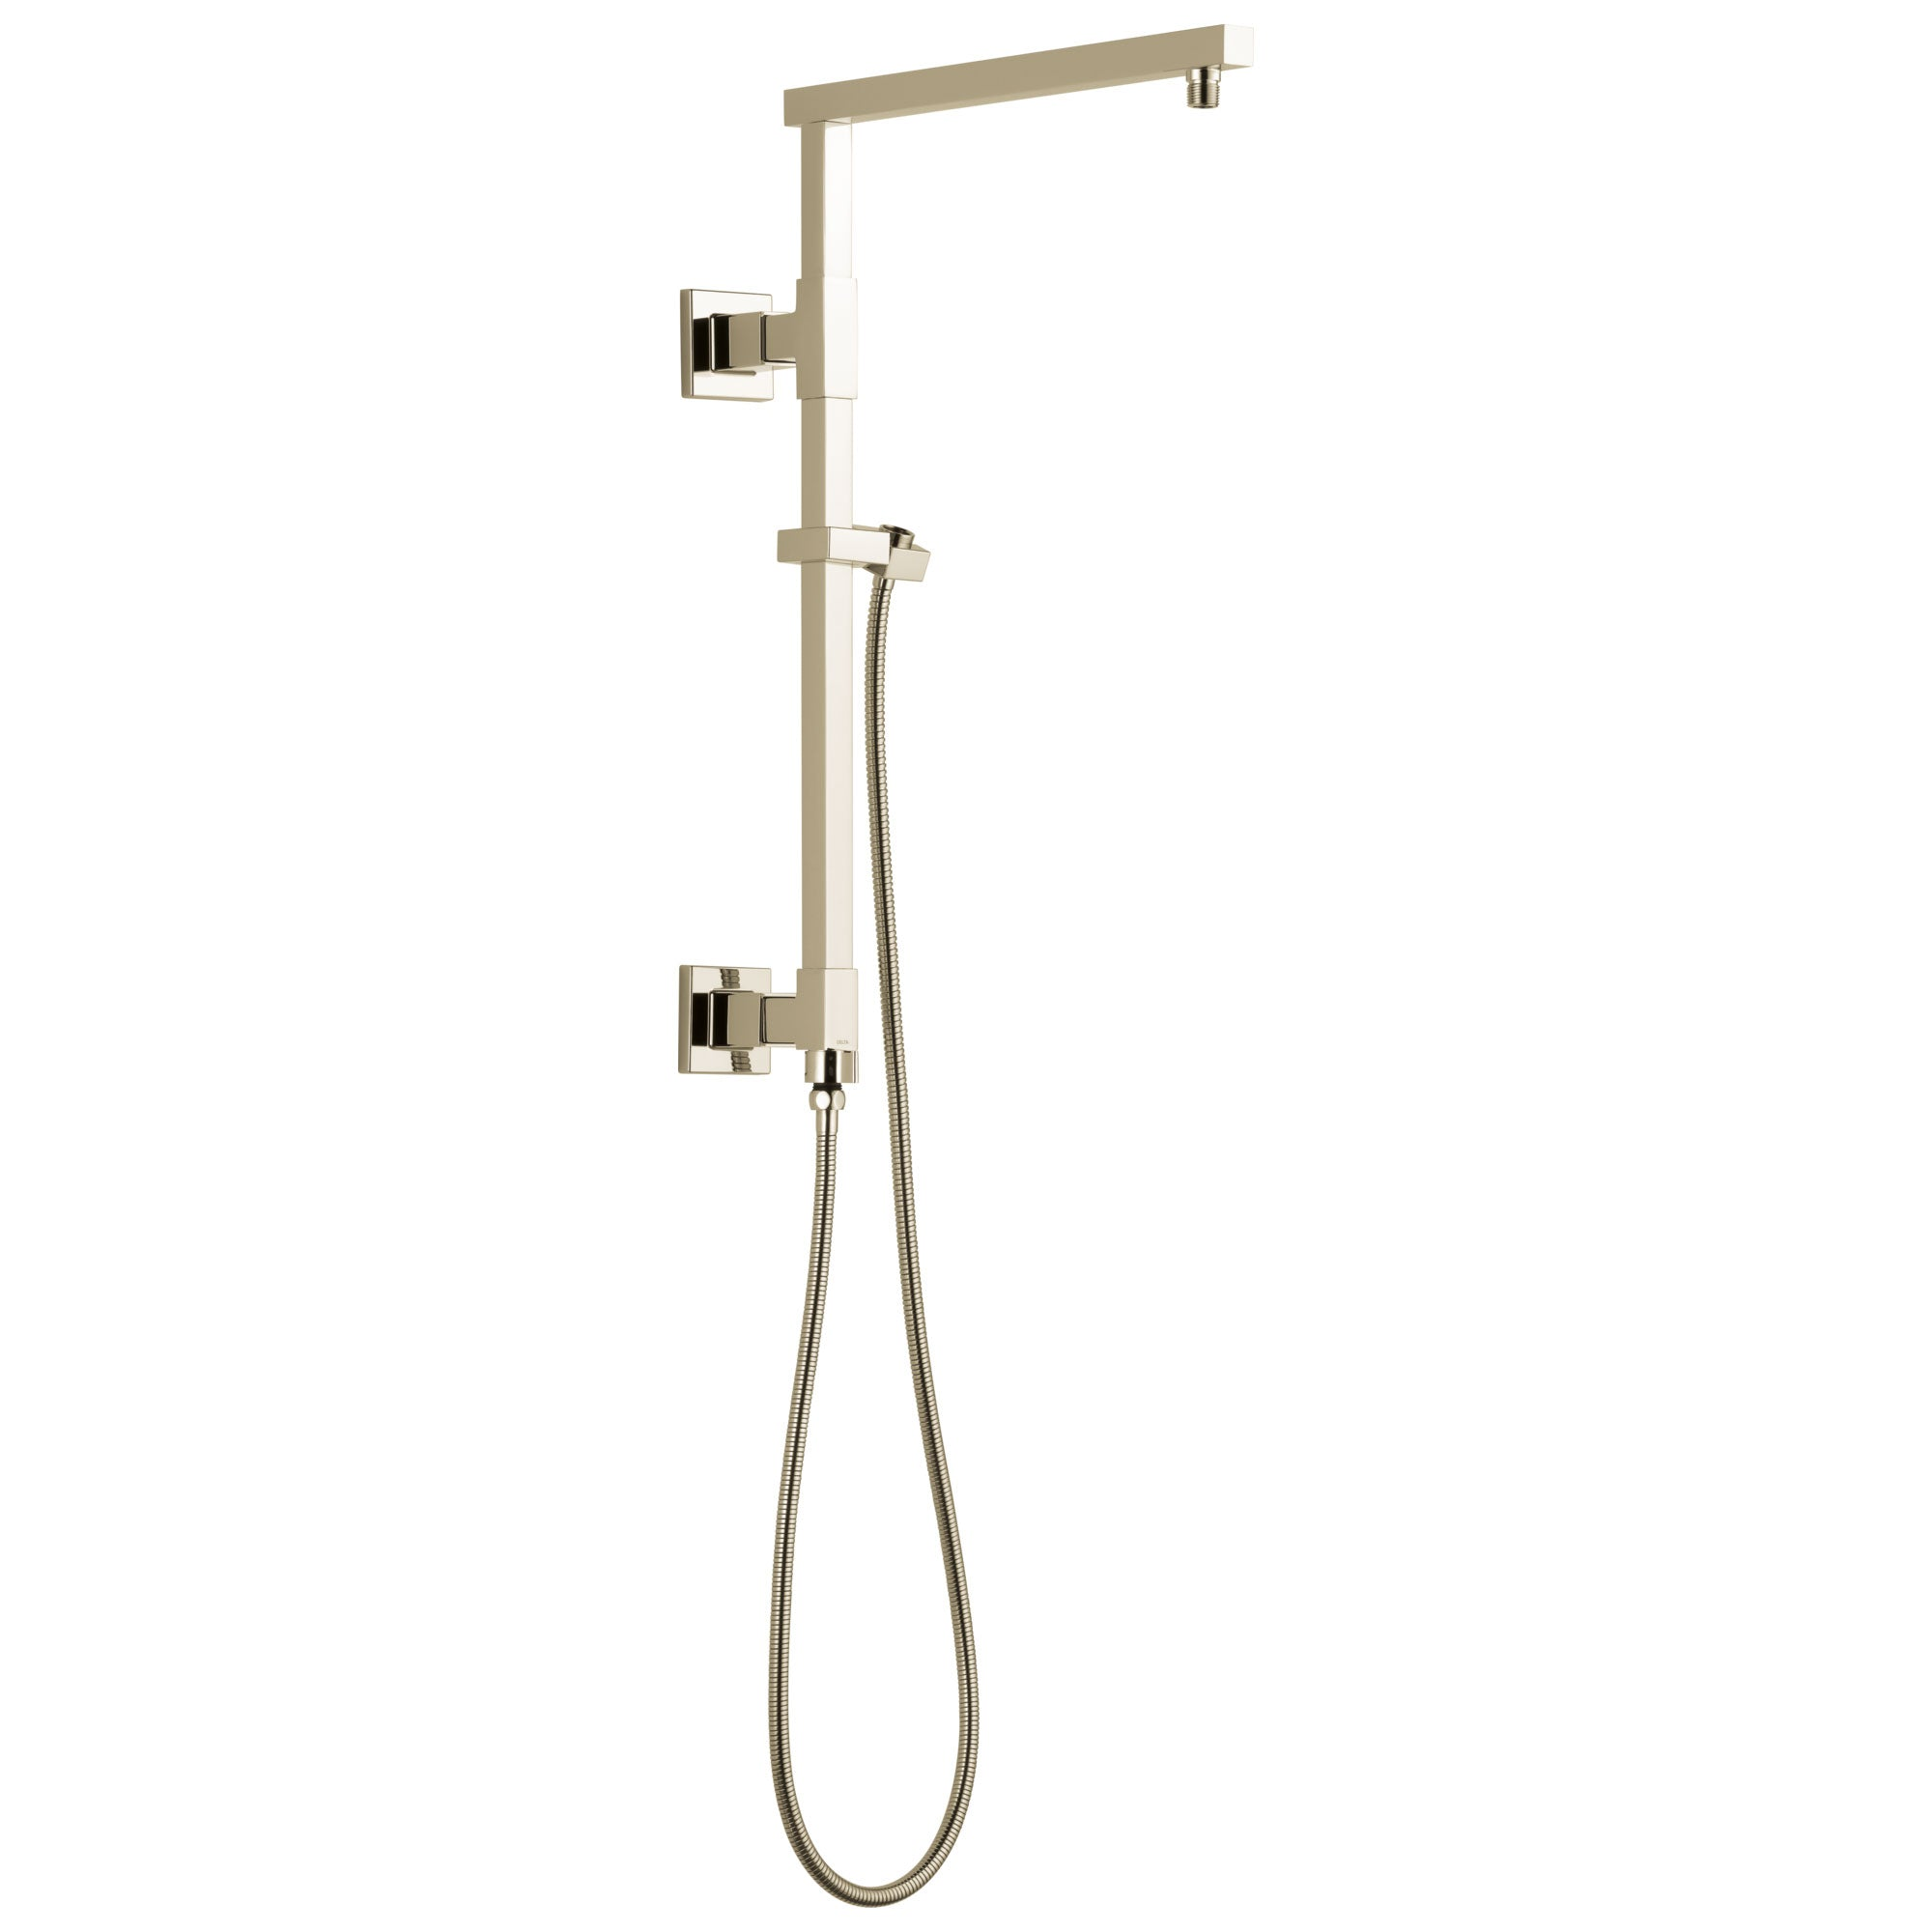 "Delta Polished Nickel Finish Emerge Modern Angular Square Shower Column 18"" (Requires Showerhead, Hand Spray, and Control) D58410PN"